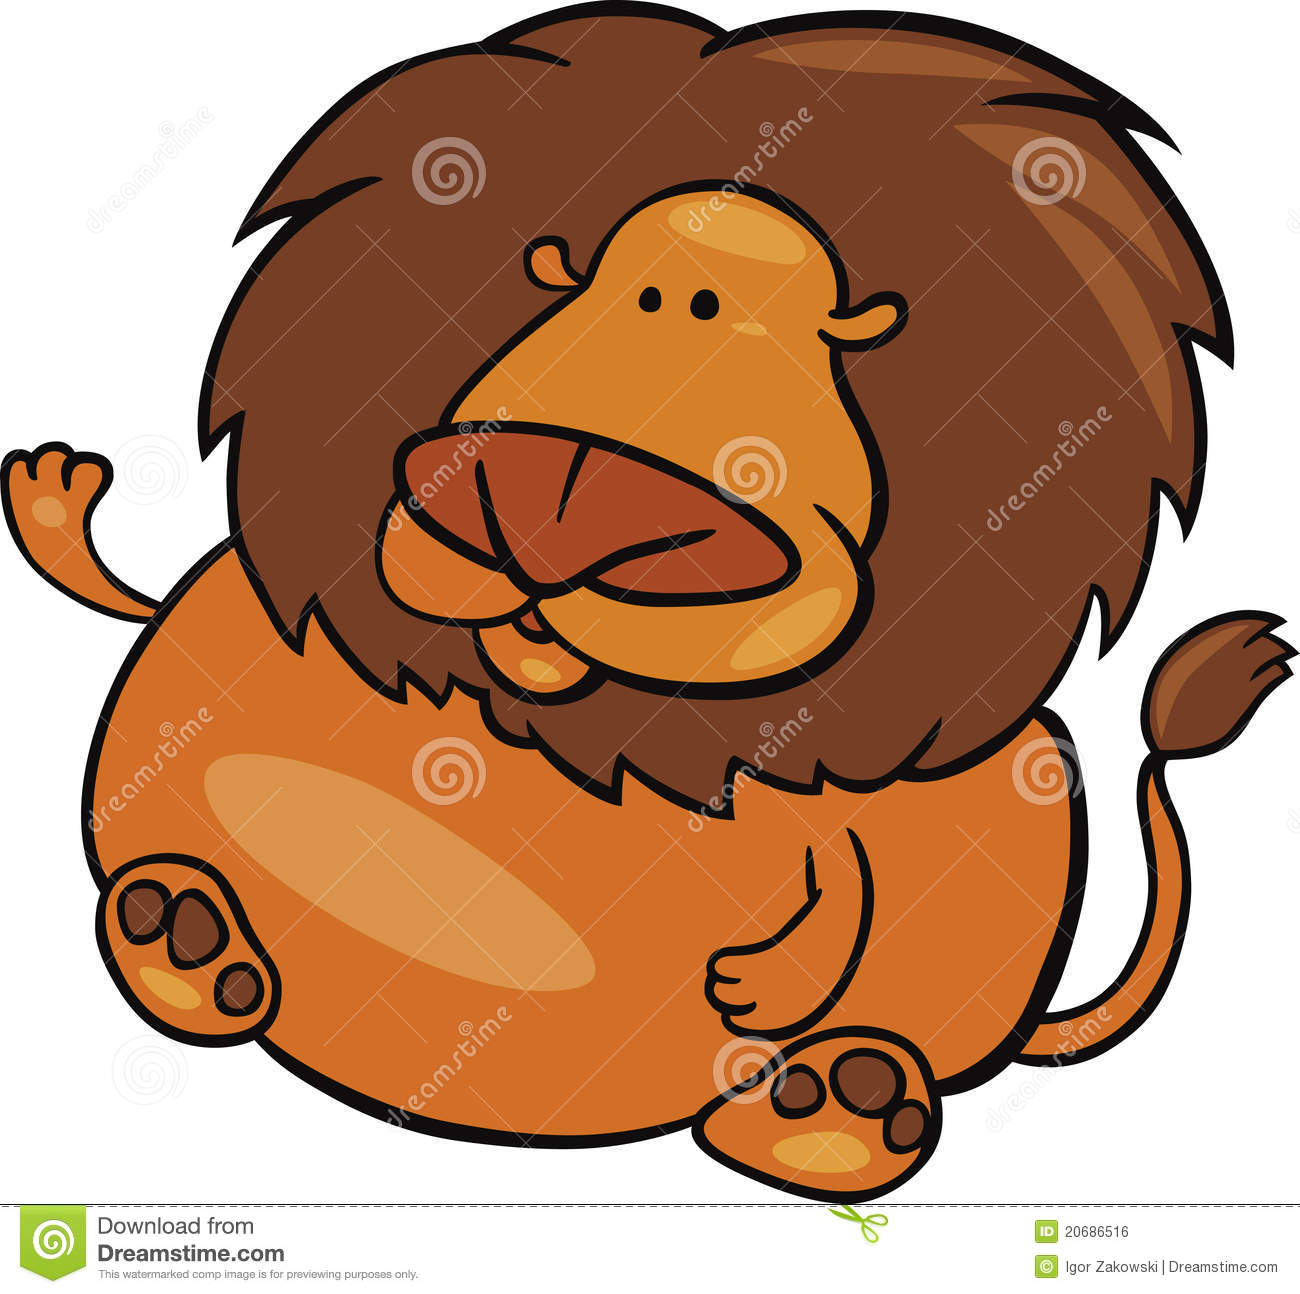 Leo zodiac sign stock vector. Image of overweight, telling ...